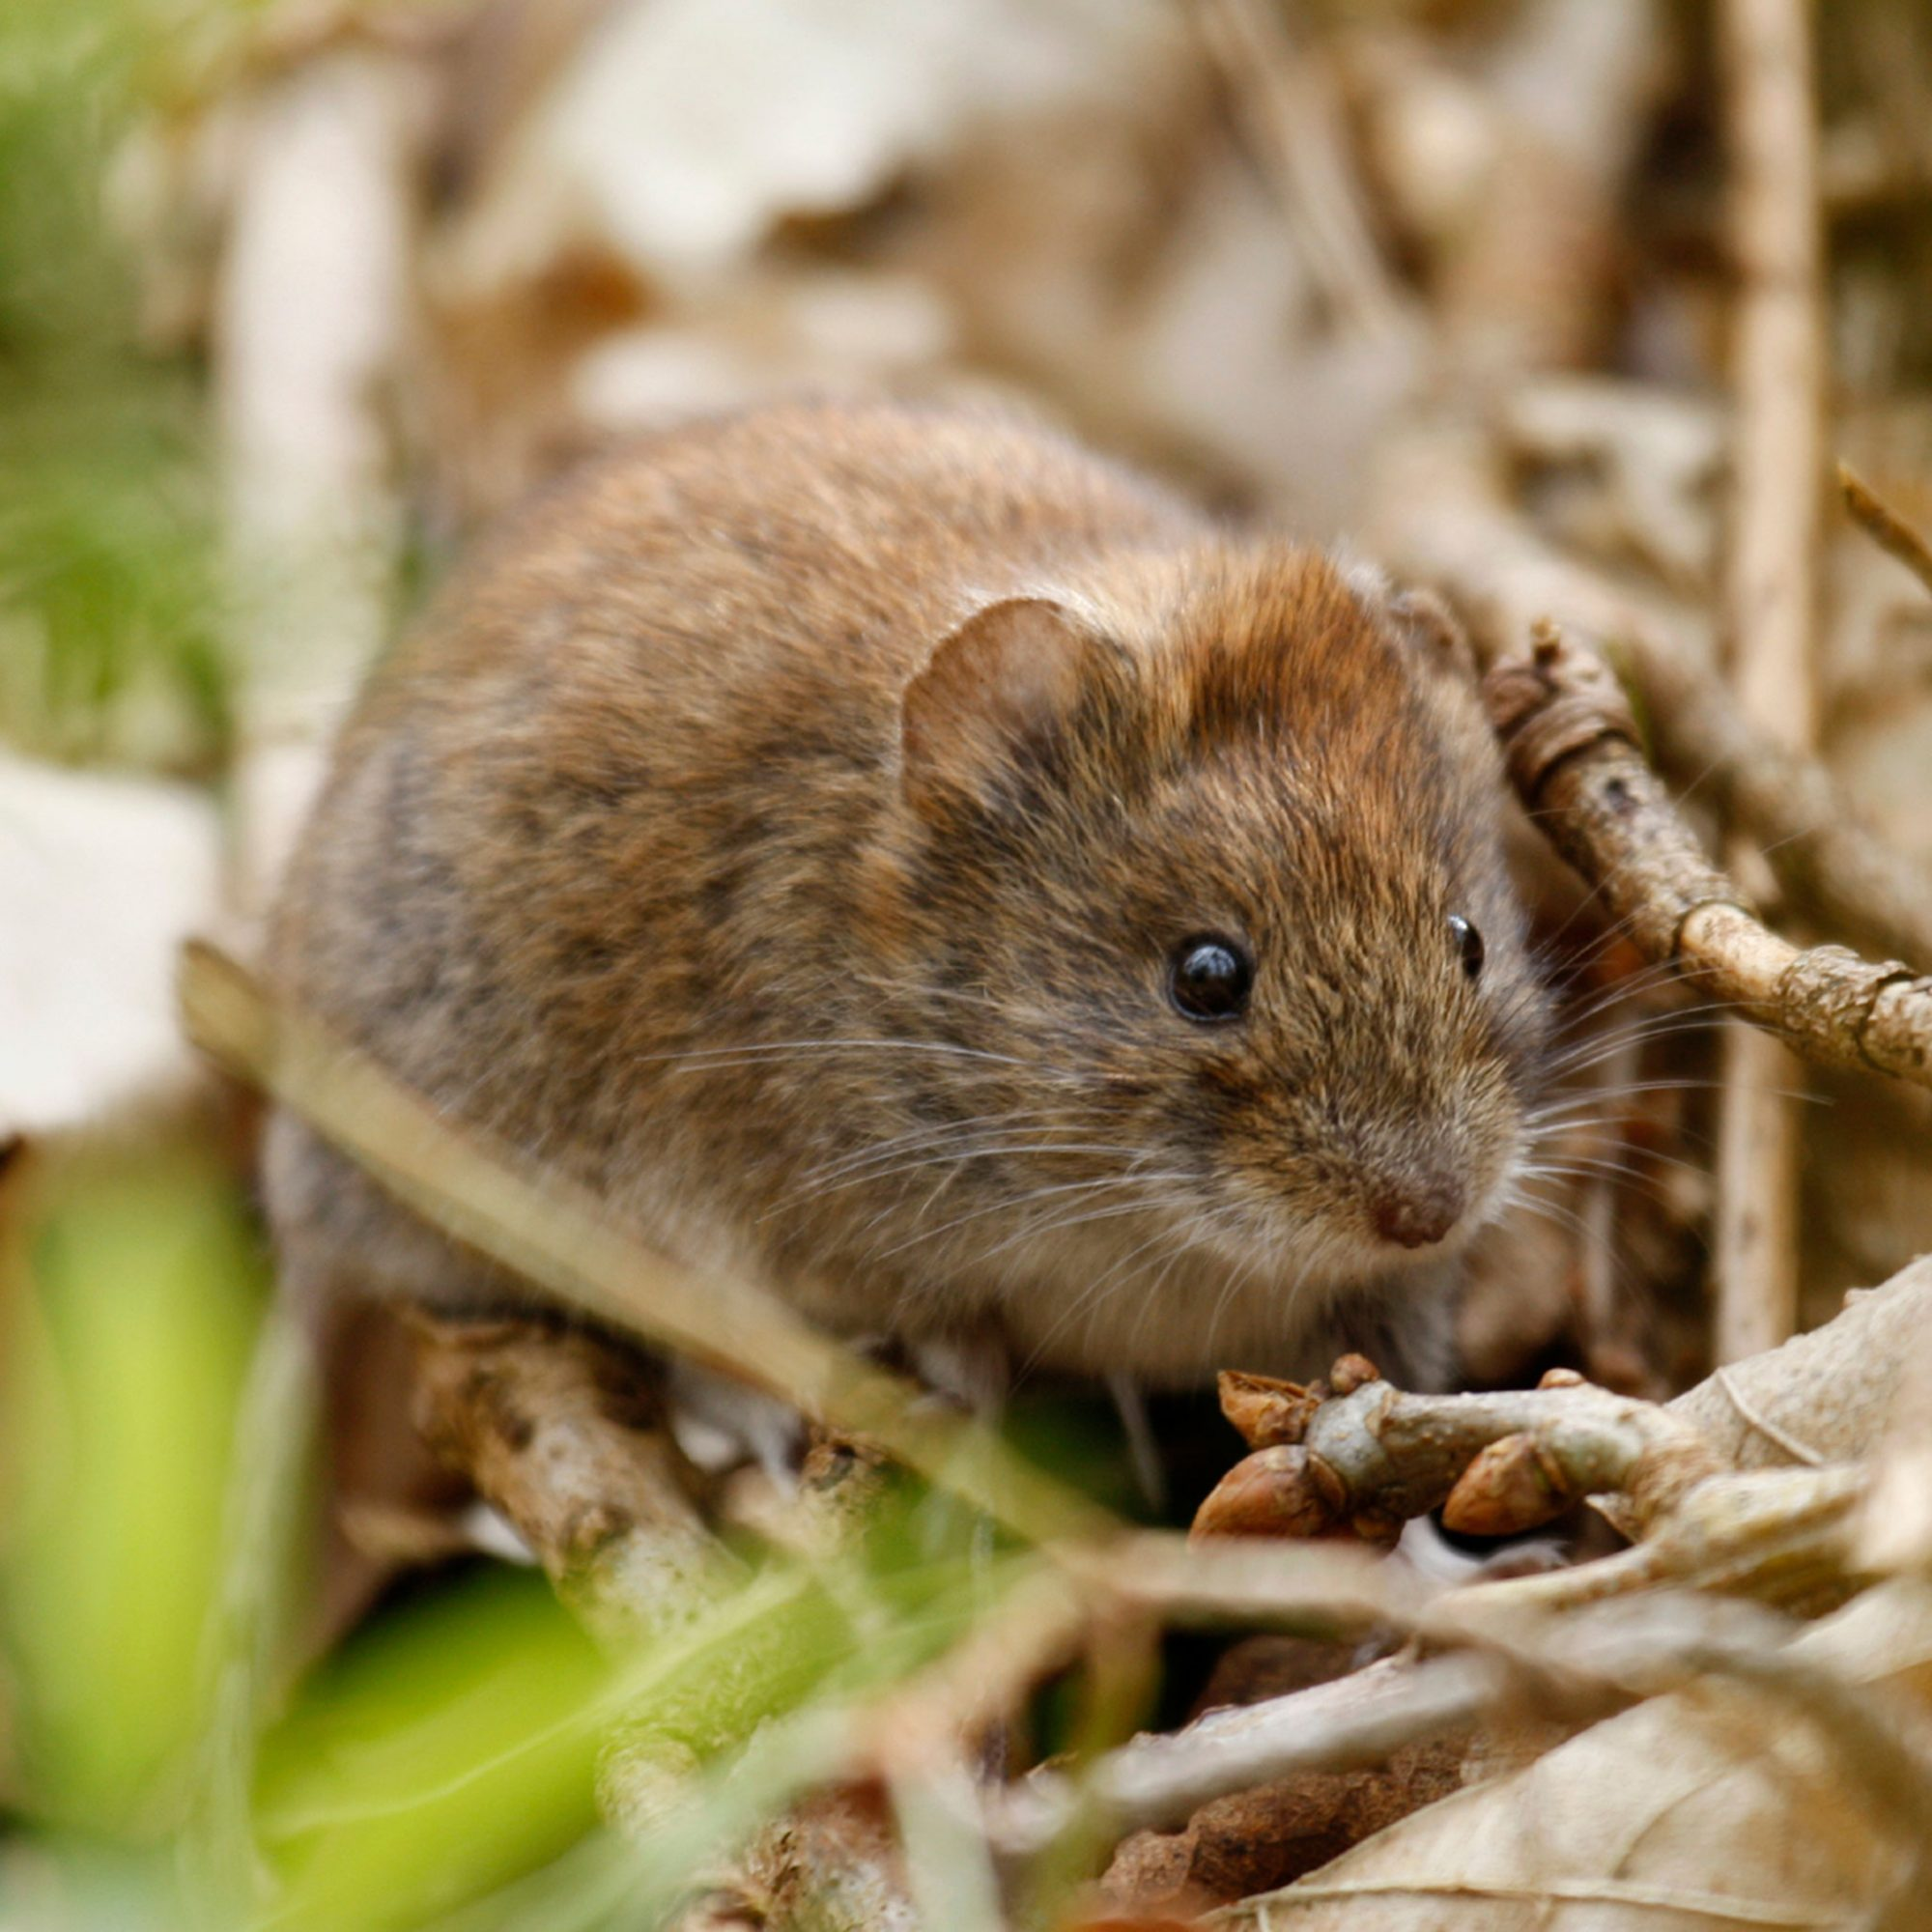 VOLE DRUNKEN BEHAVIOR